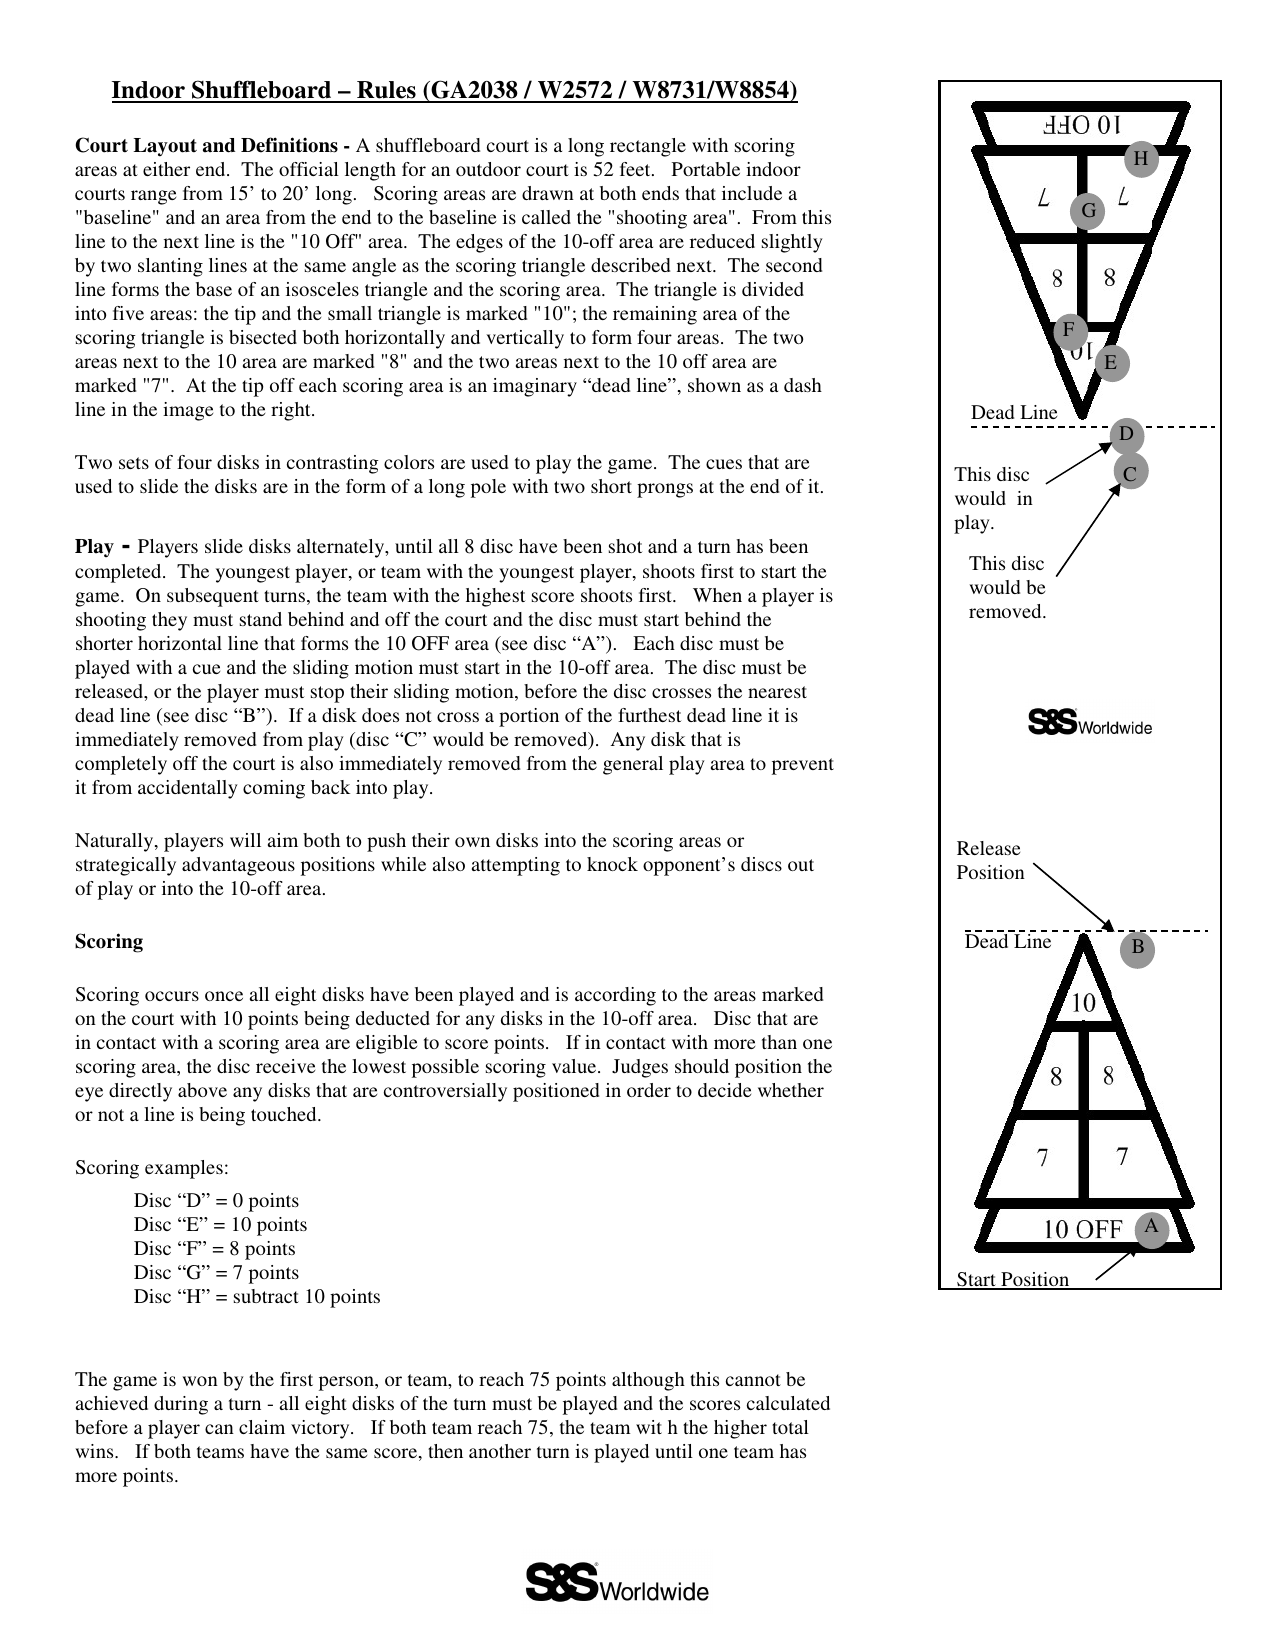 Outdoor Shuffleboard Rules Pdf